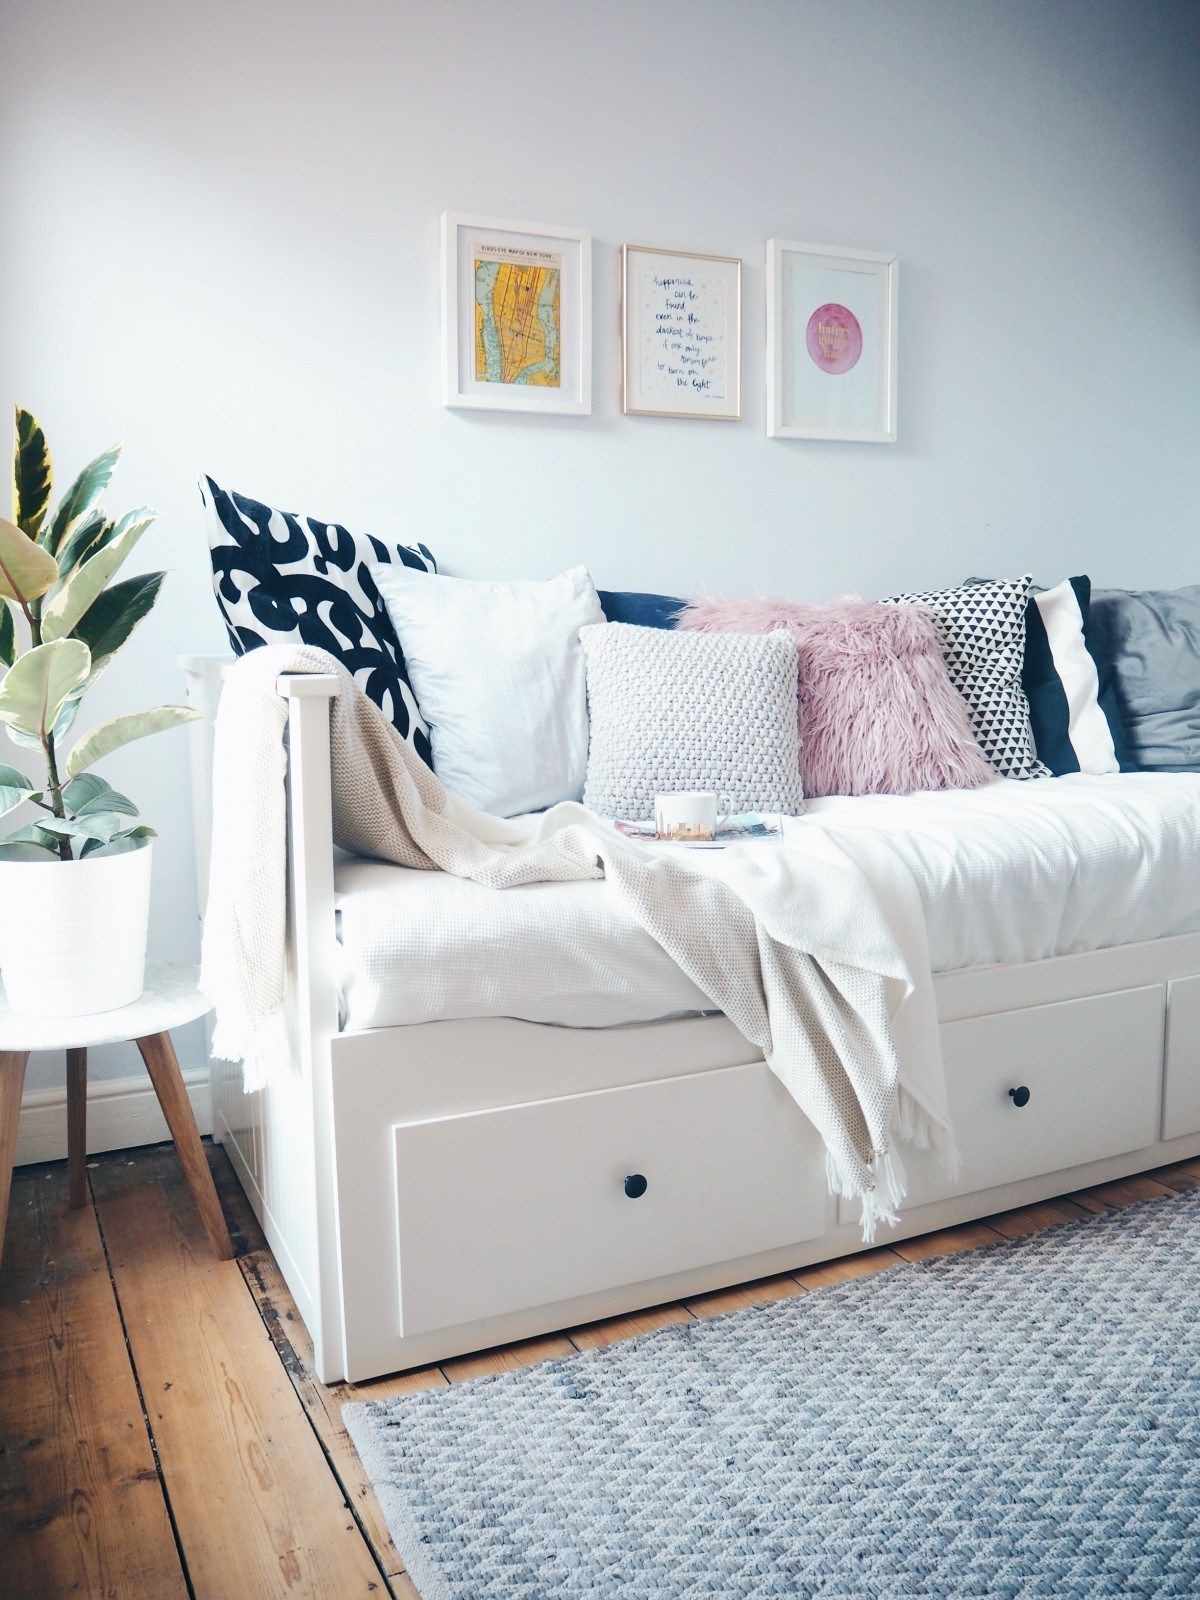 A mini tour of my spare room a lifestyle post from the blog hannah gale written by hannah gale on bloglovin